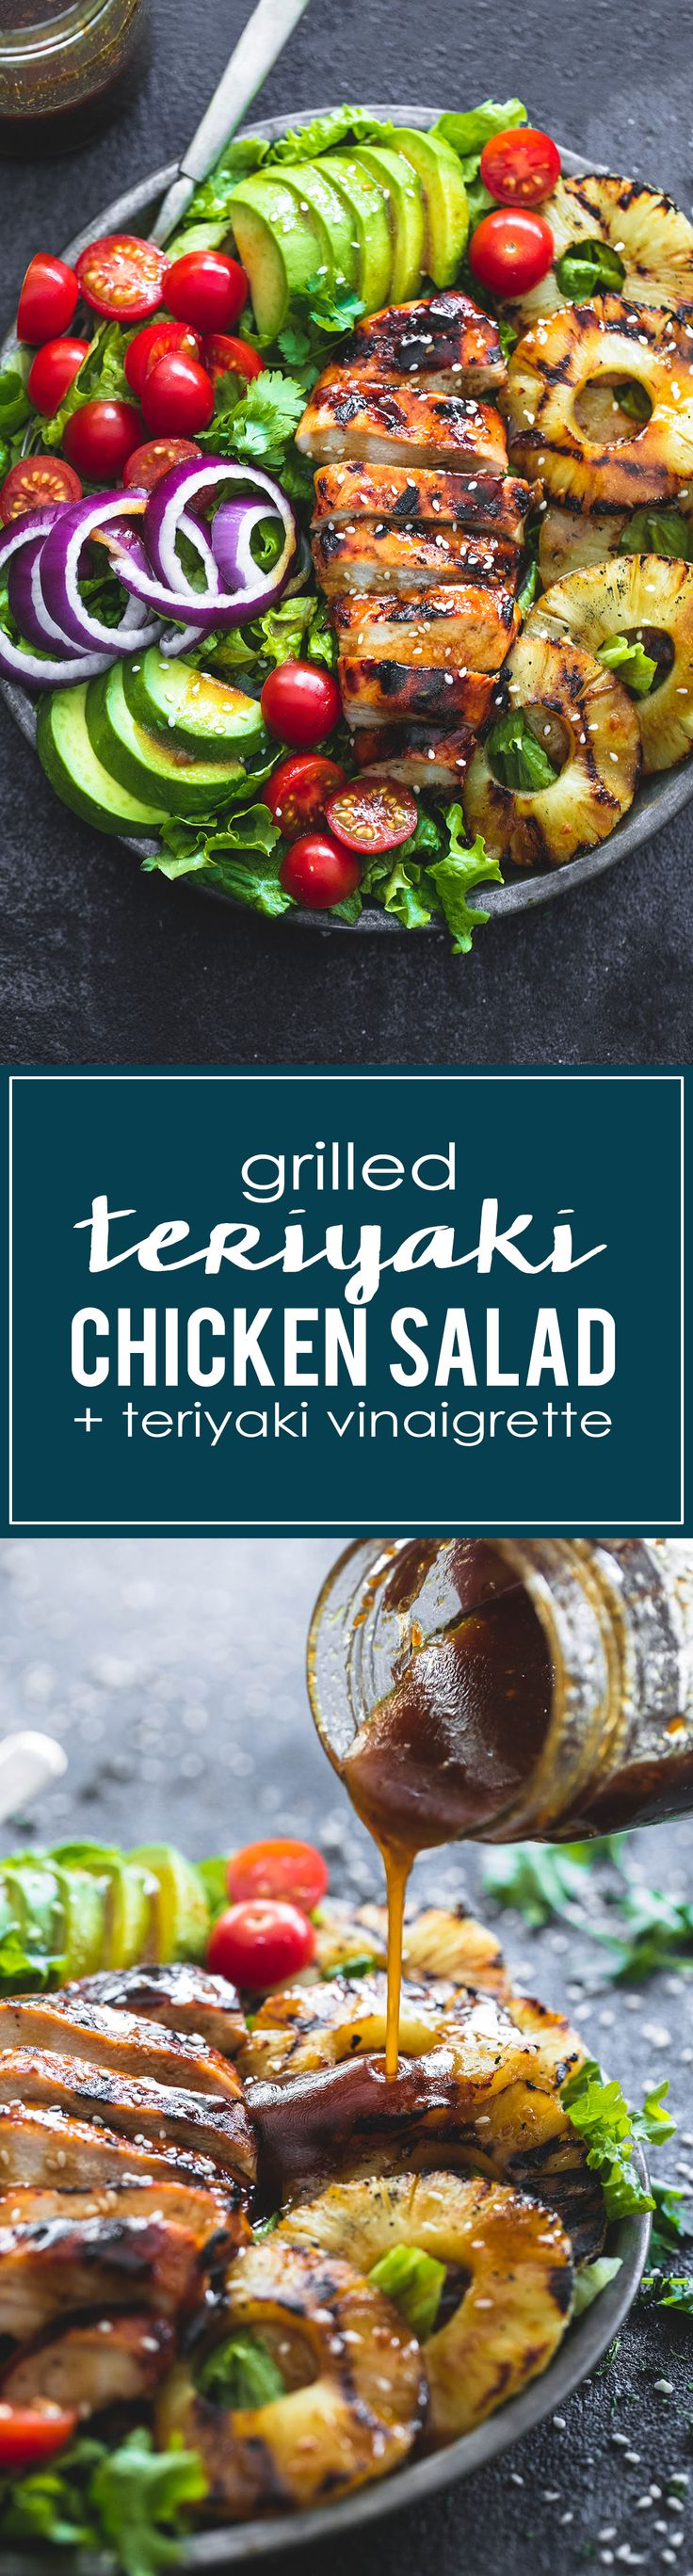 Grilled Teriyaki Chicken Salad with Teriyaki Vinaigrette | lecremedelacrumb.com